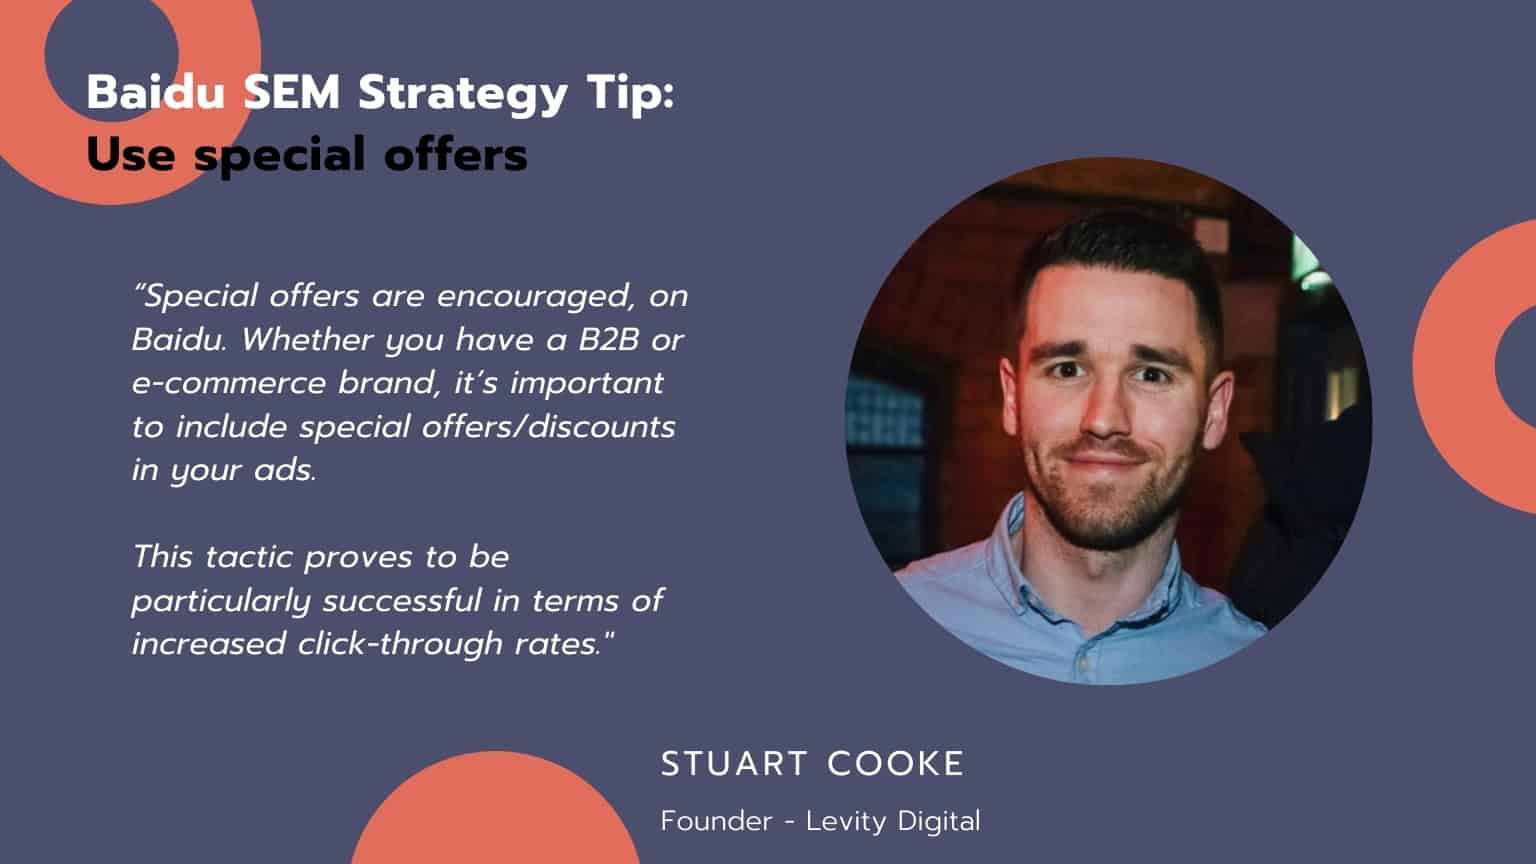 Baidu SEM Strategy Tip : Use special offers